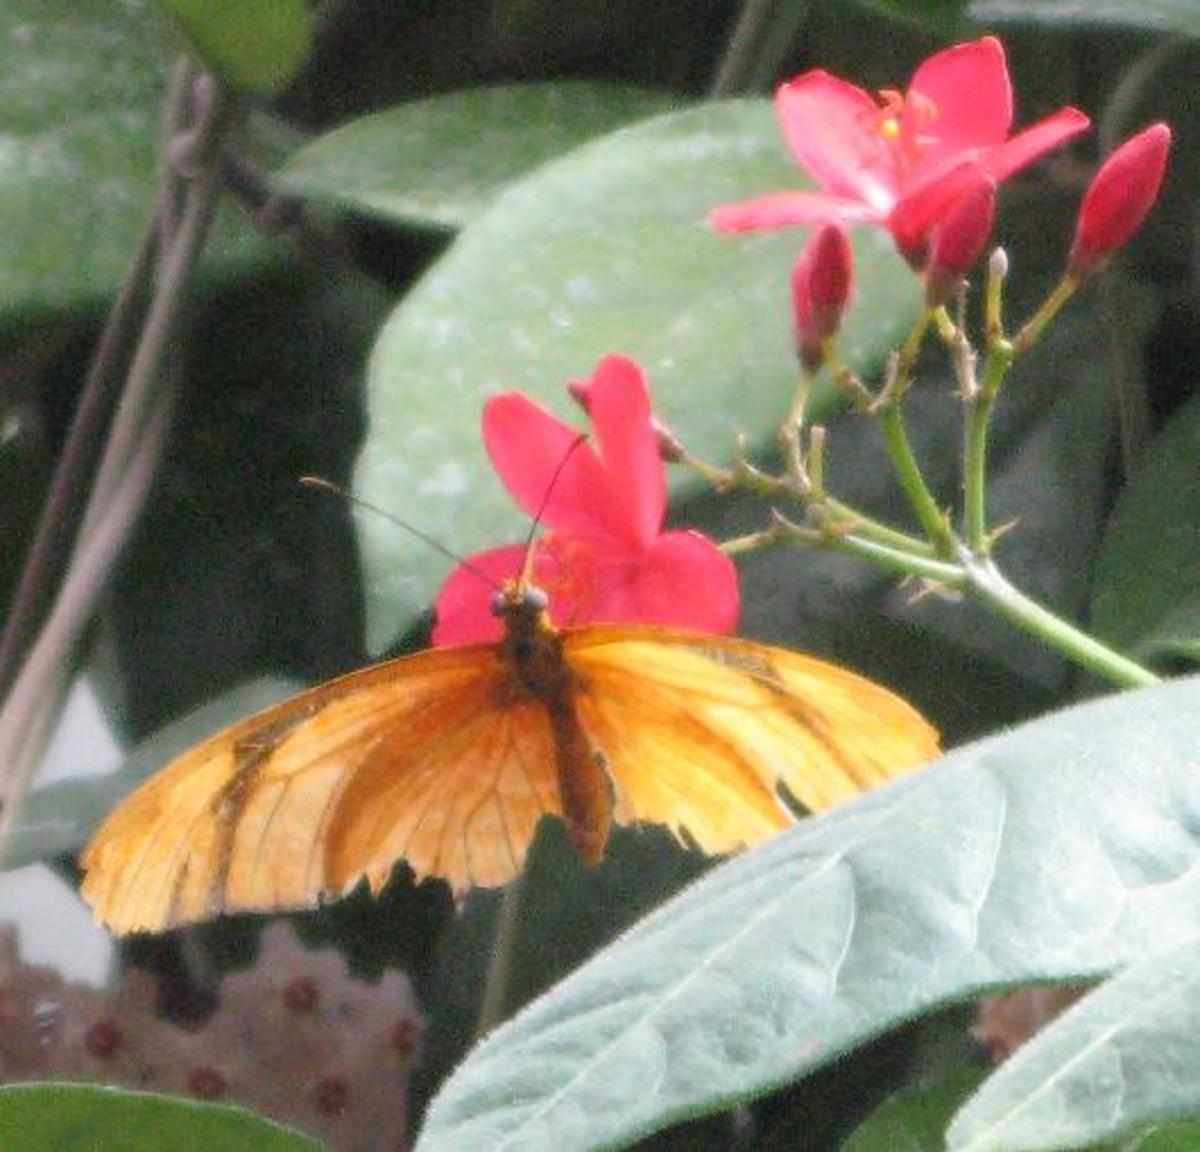 Orange Butterfly feasting on a Red Flower